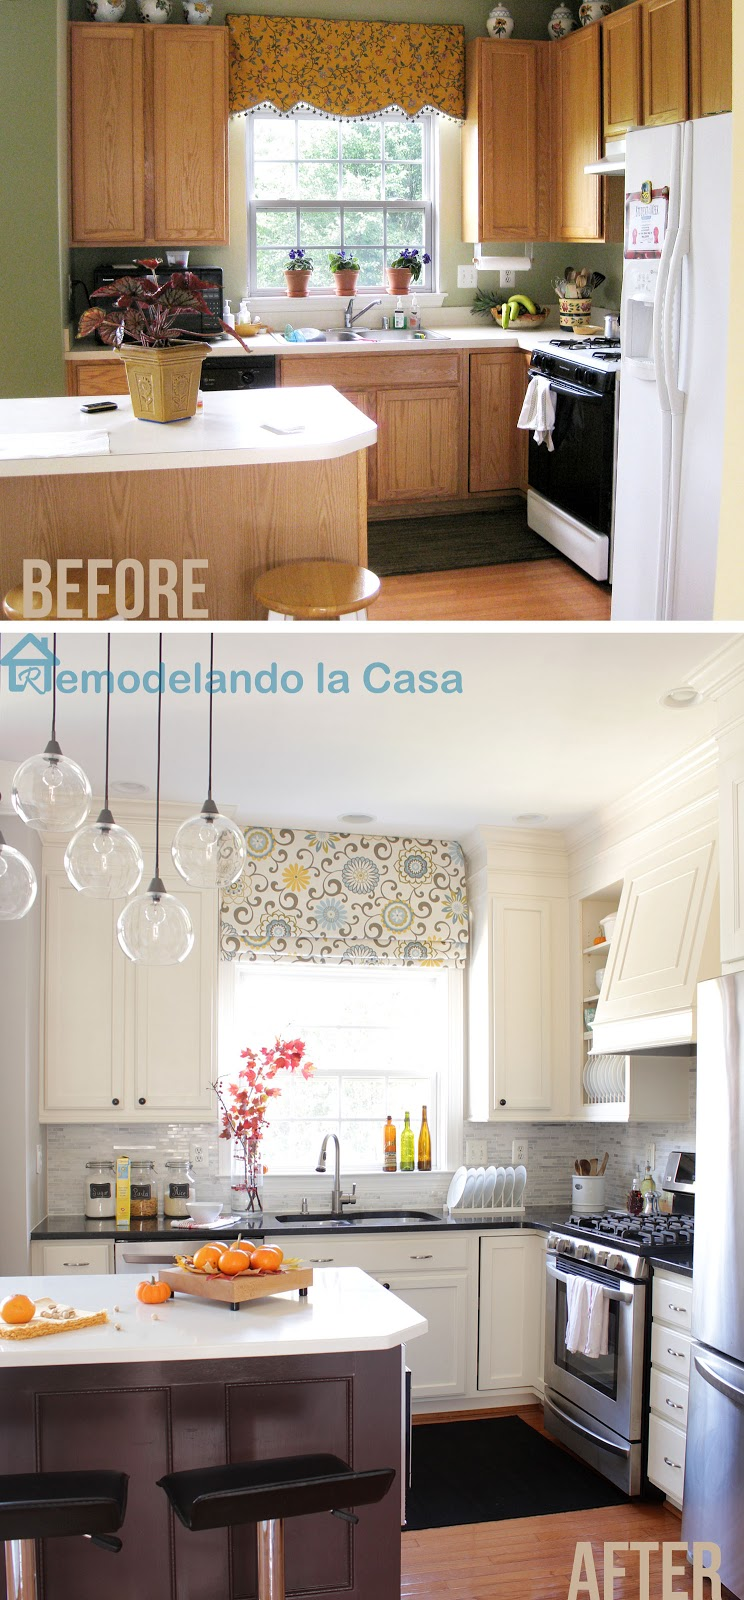 Kitchen makeover remodelando la casa for Kitchen cupboard makeover before and after